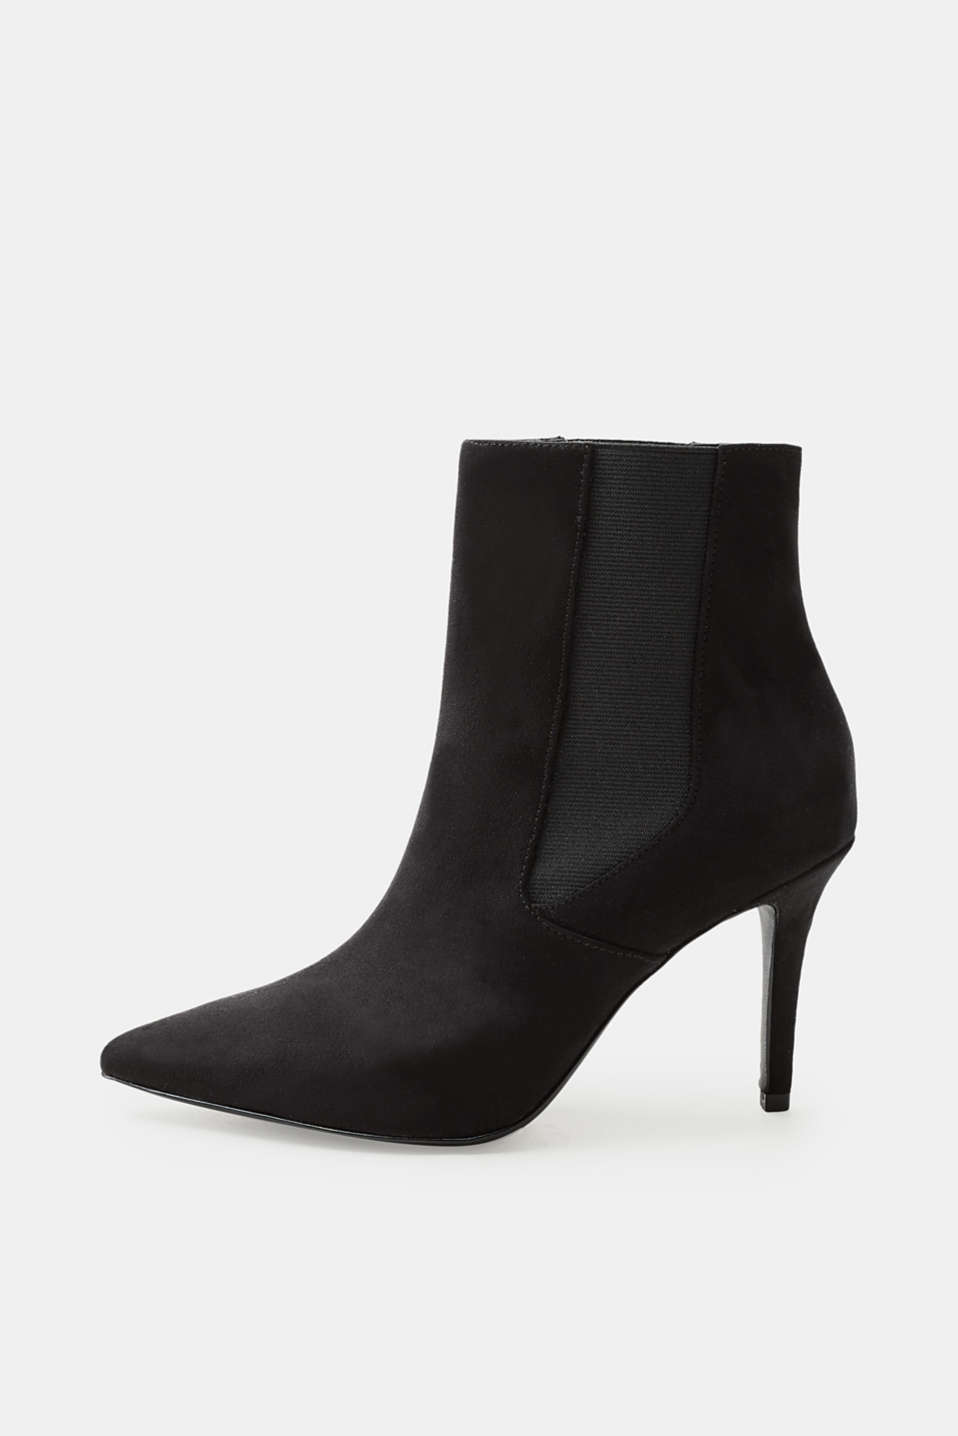 Esprit - Suede ankle boots with a kitten heel